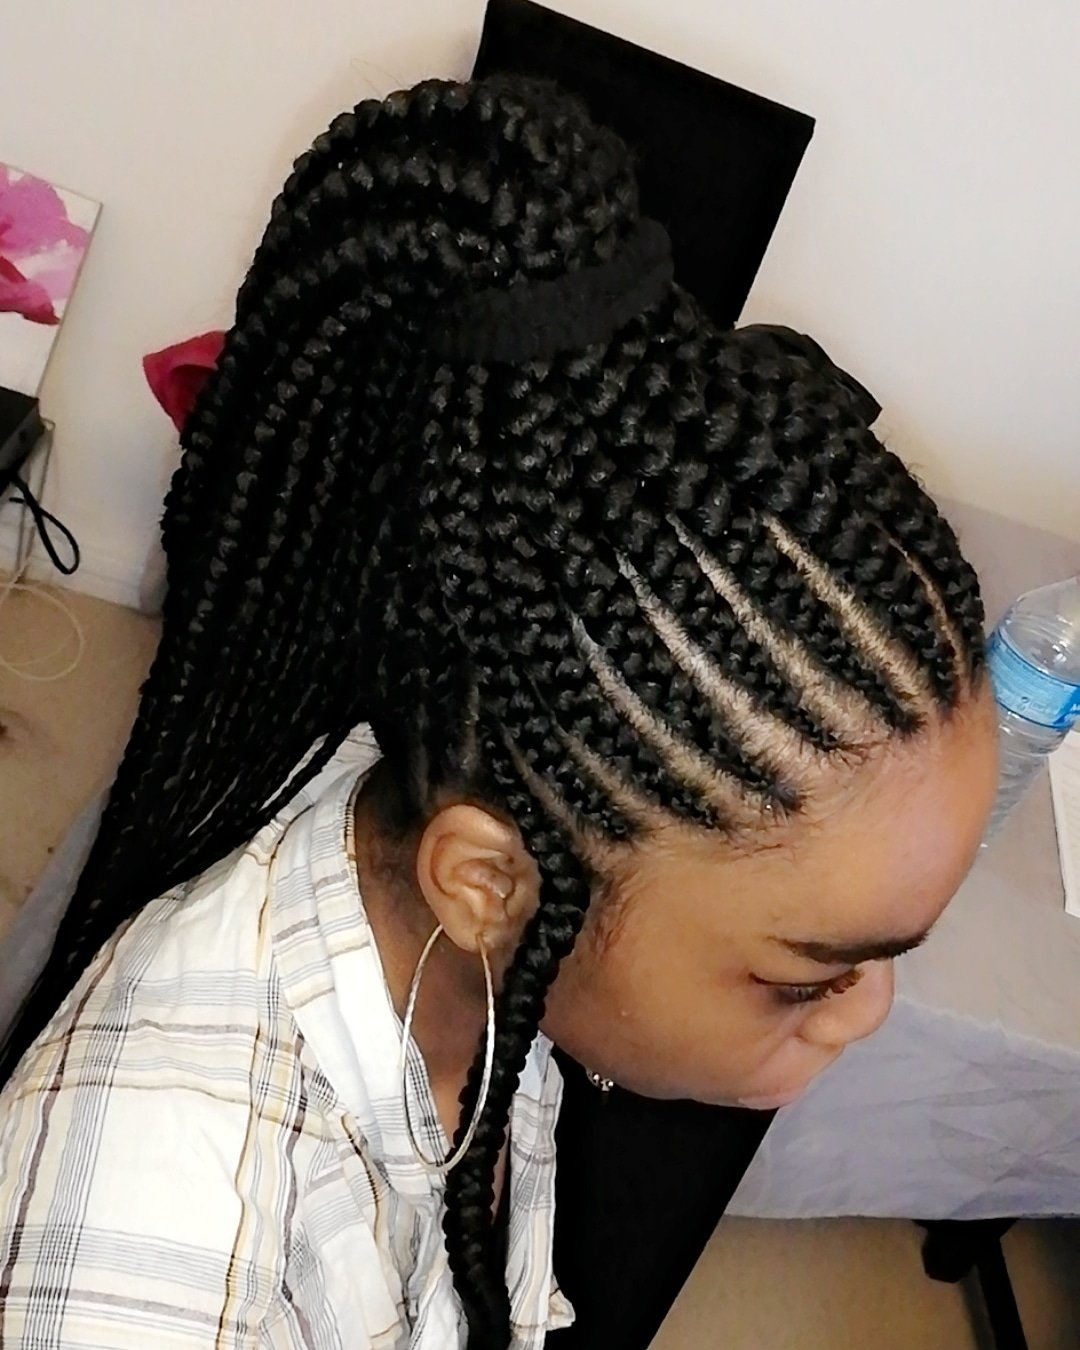 salon de coiffure afro tresse tresses box braids crochet braids vanilles tissages paris 75 77 78 91 92 93 94 95 SPGKGDVL